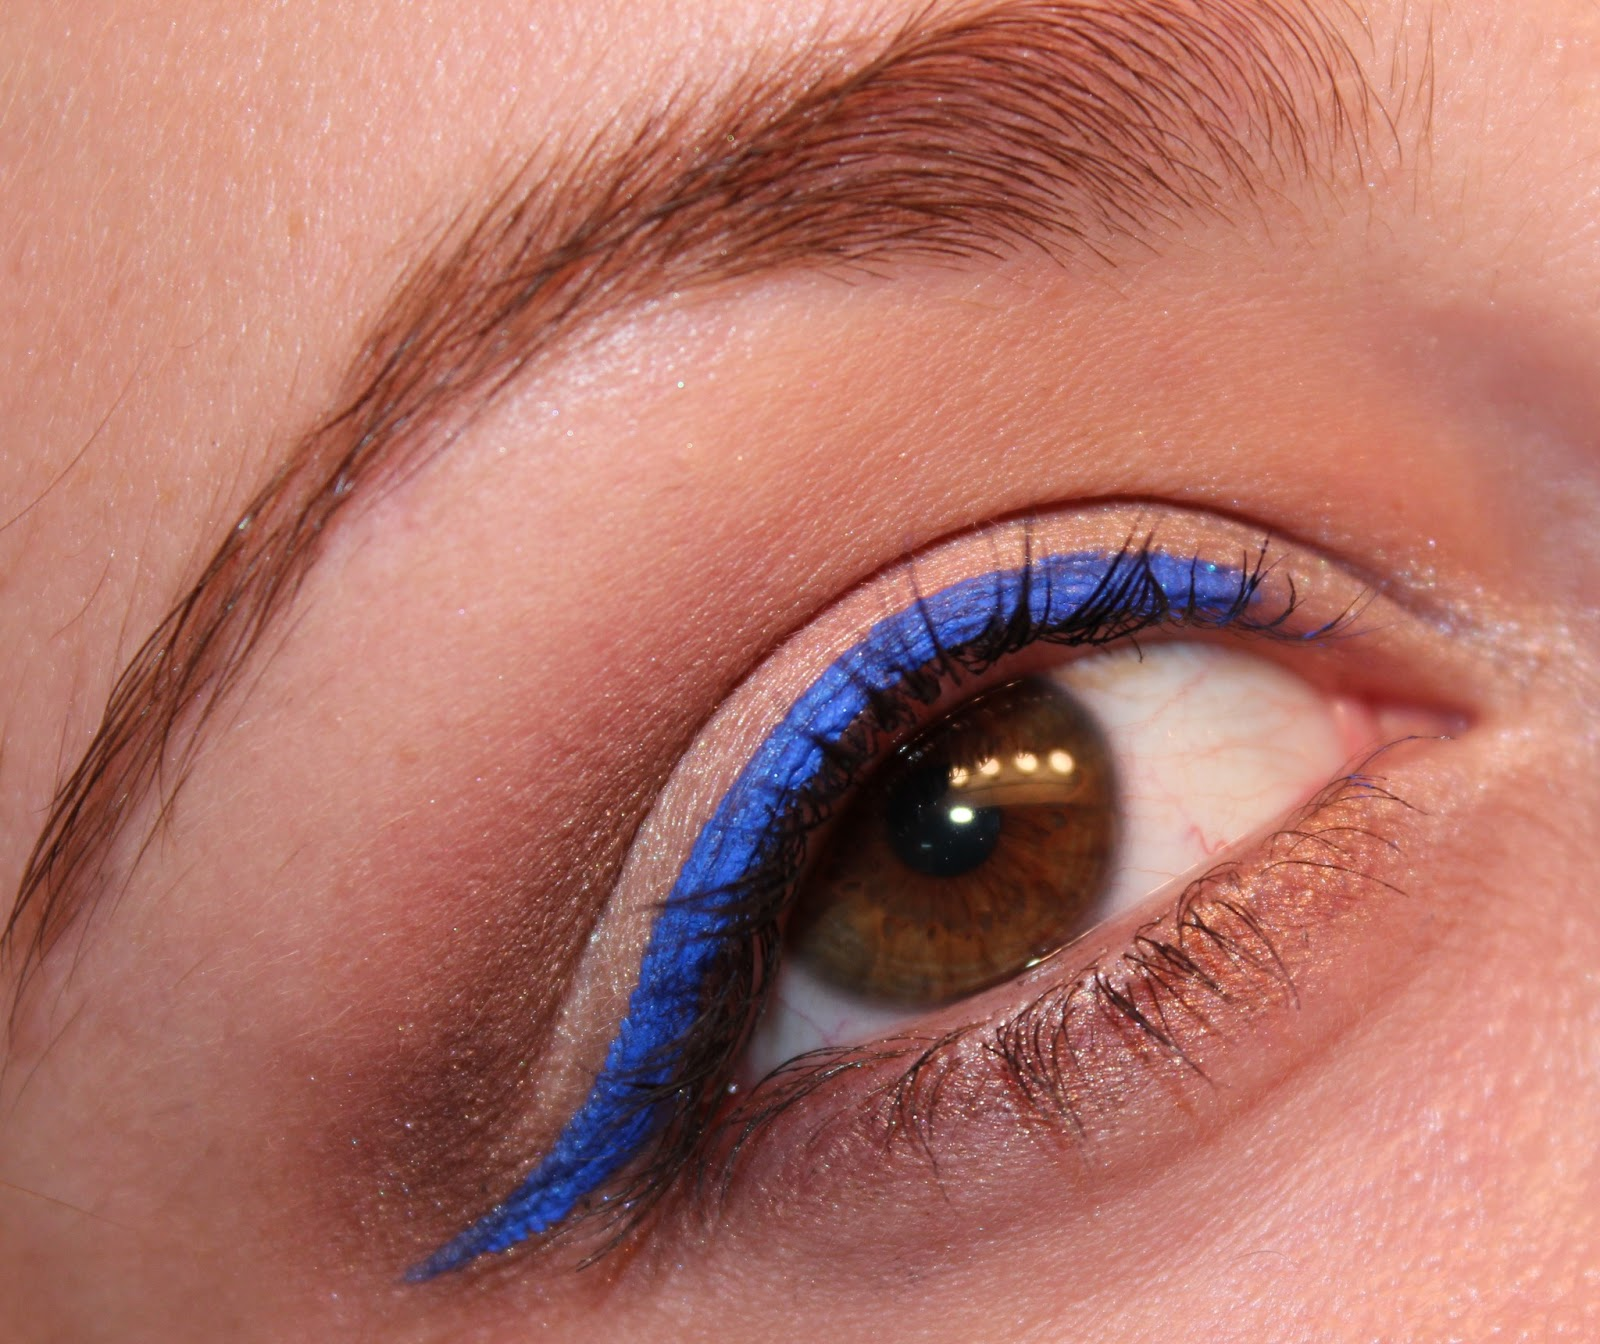 Luhivys Favorite Things Summer Makeup Neutral Eye With Electric